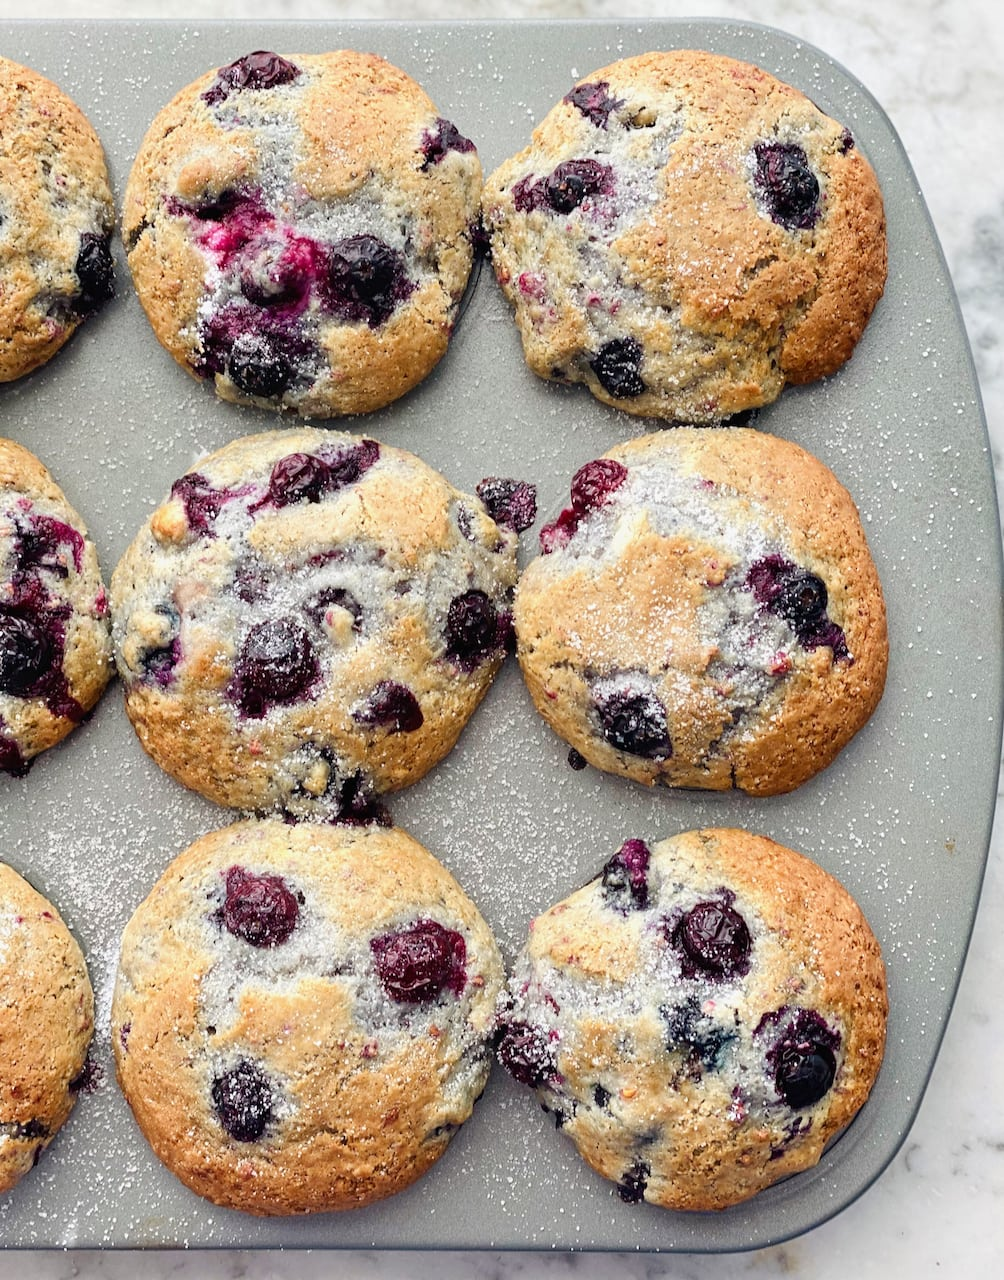 blueberry muffins finished baking in a muffin tin pan